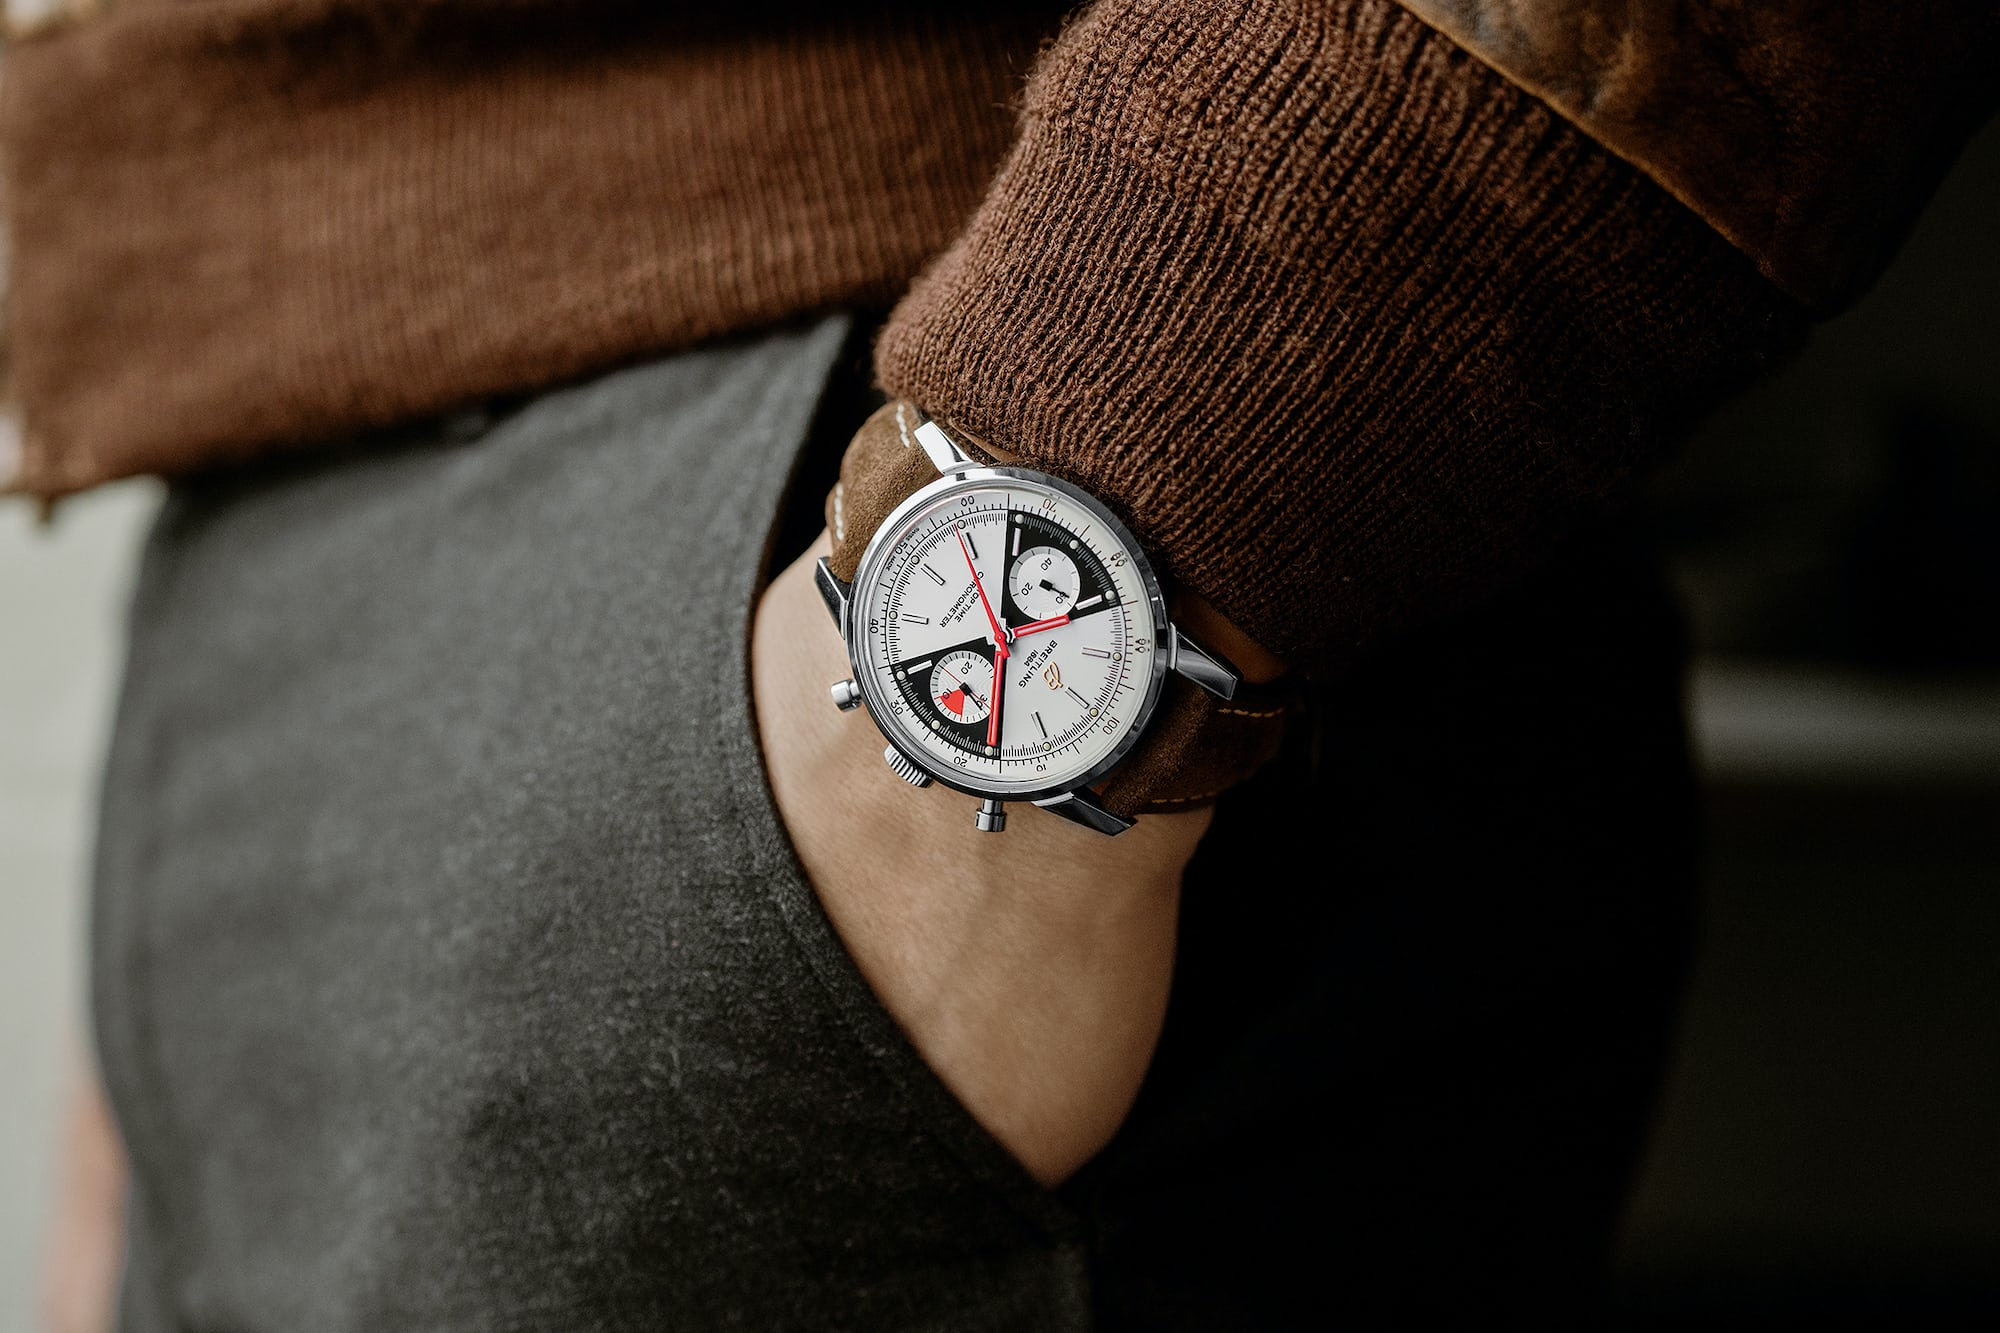 """<p><a href=""""https://shop.hodinkee.com/collections/breitling/products/breitling-top-time-chronograph-limited-edition-2020?variant=31965177020491#&amp;gid=1&amp;pid=8"""" rel=""""noopener"""" target=""""_blank""""><u>Breitling Top Time Limited Edition</u></a></p>"""